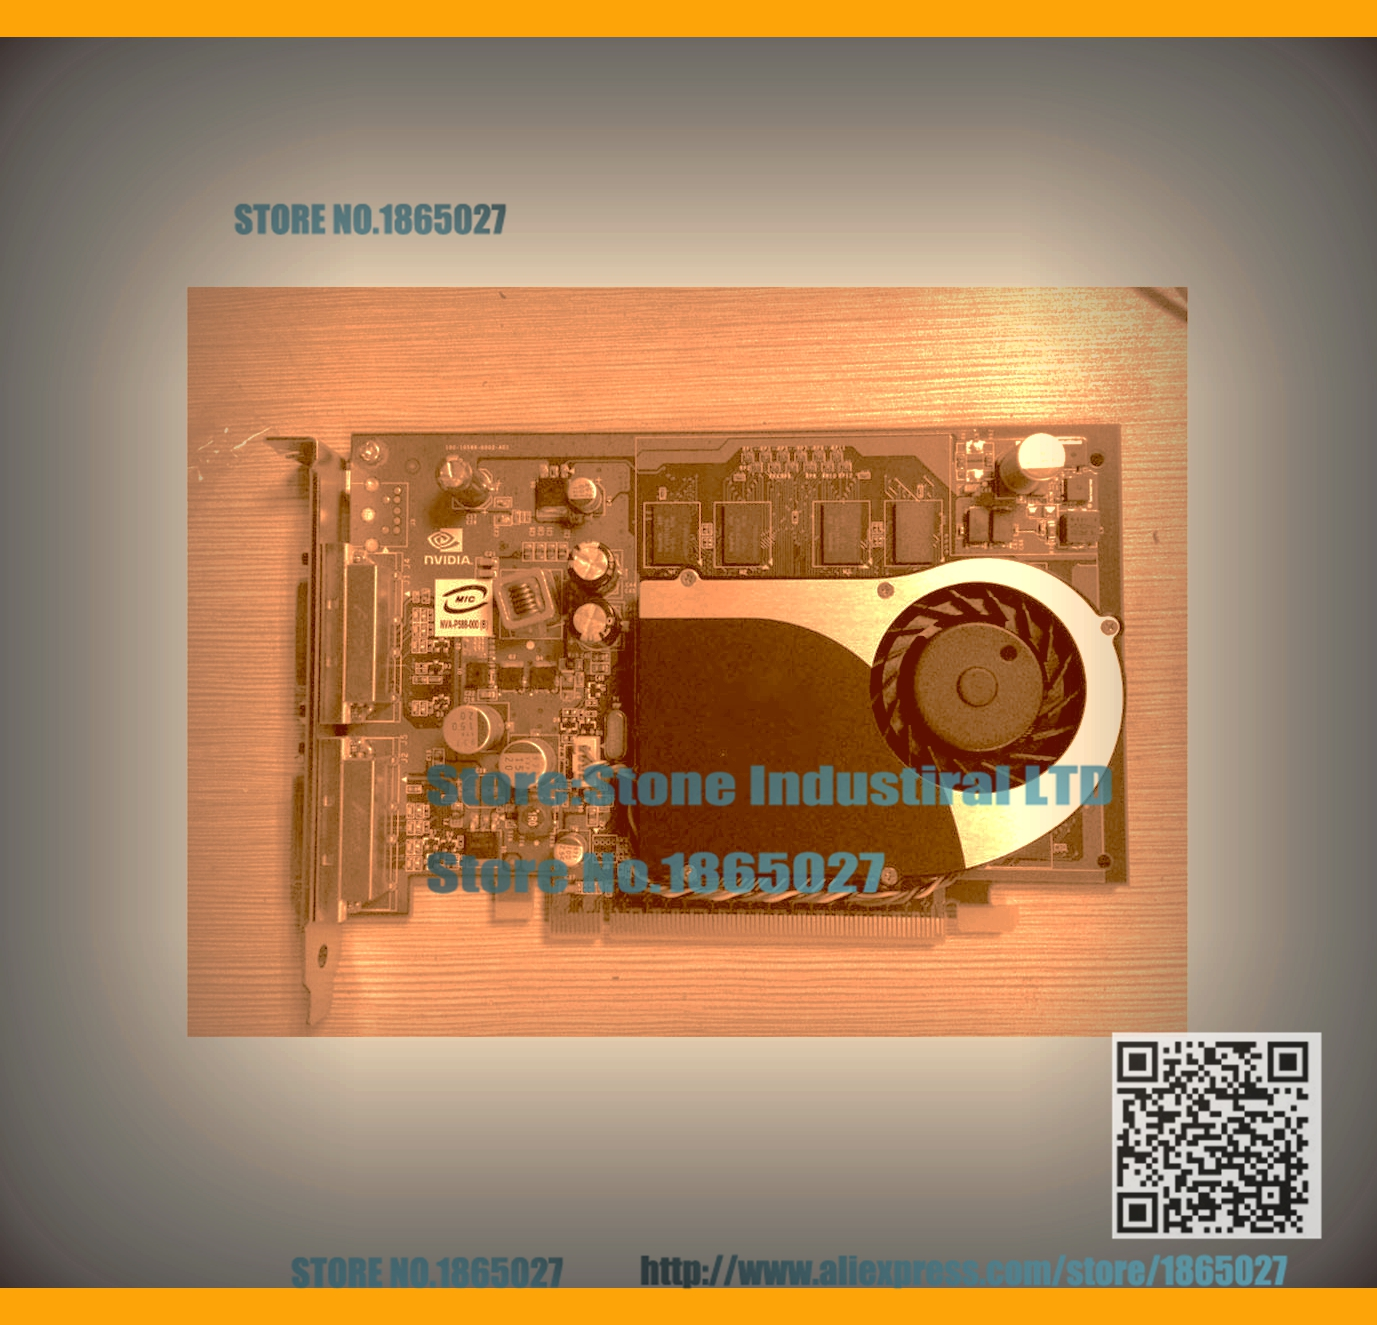 FX 570 PCI-E 256MB Professional graphics ca rd XW397 45R7403 100% Tested Good Quality original ni pci 6013 selling with good quality and professional